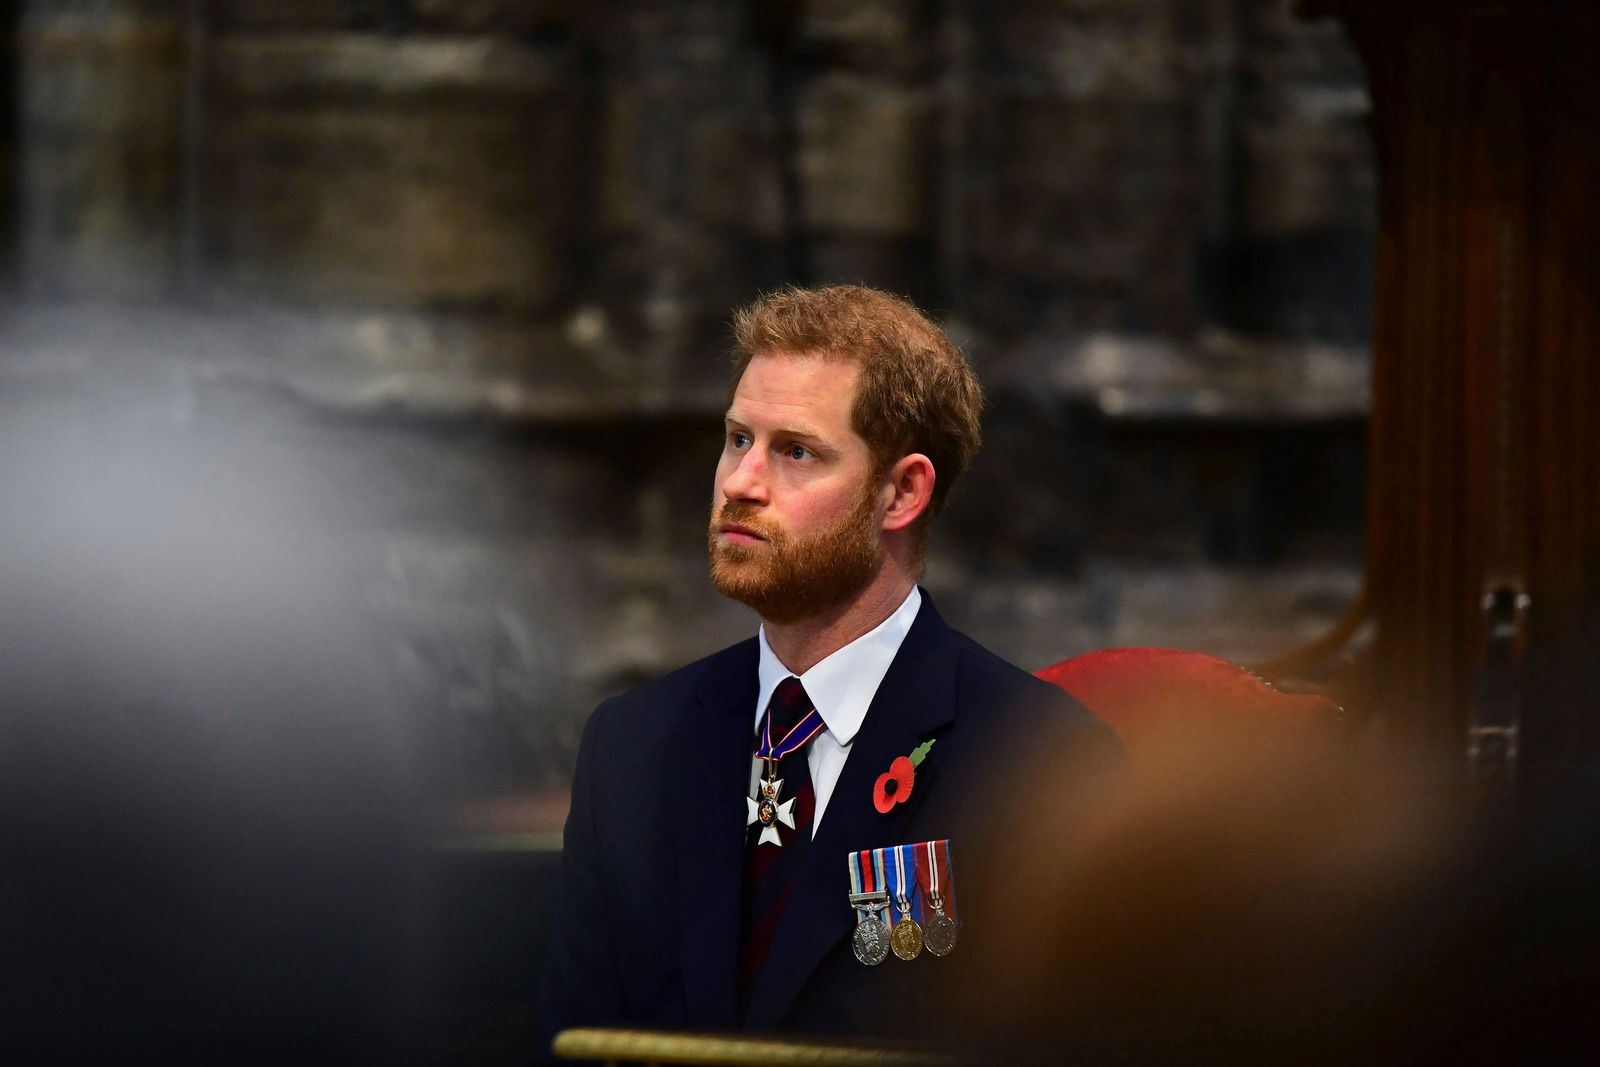 Britain's Prince Harry, the Duke of Sussex attends the Anzac Day Service of Commemoration and Thanksgiving at Westminster Abbey, in London, Thursday April 25, 2019.{ } (Victoria Jones/Pool Photo via AP)